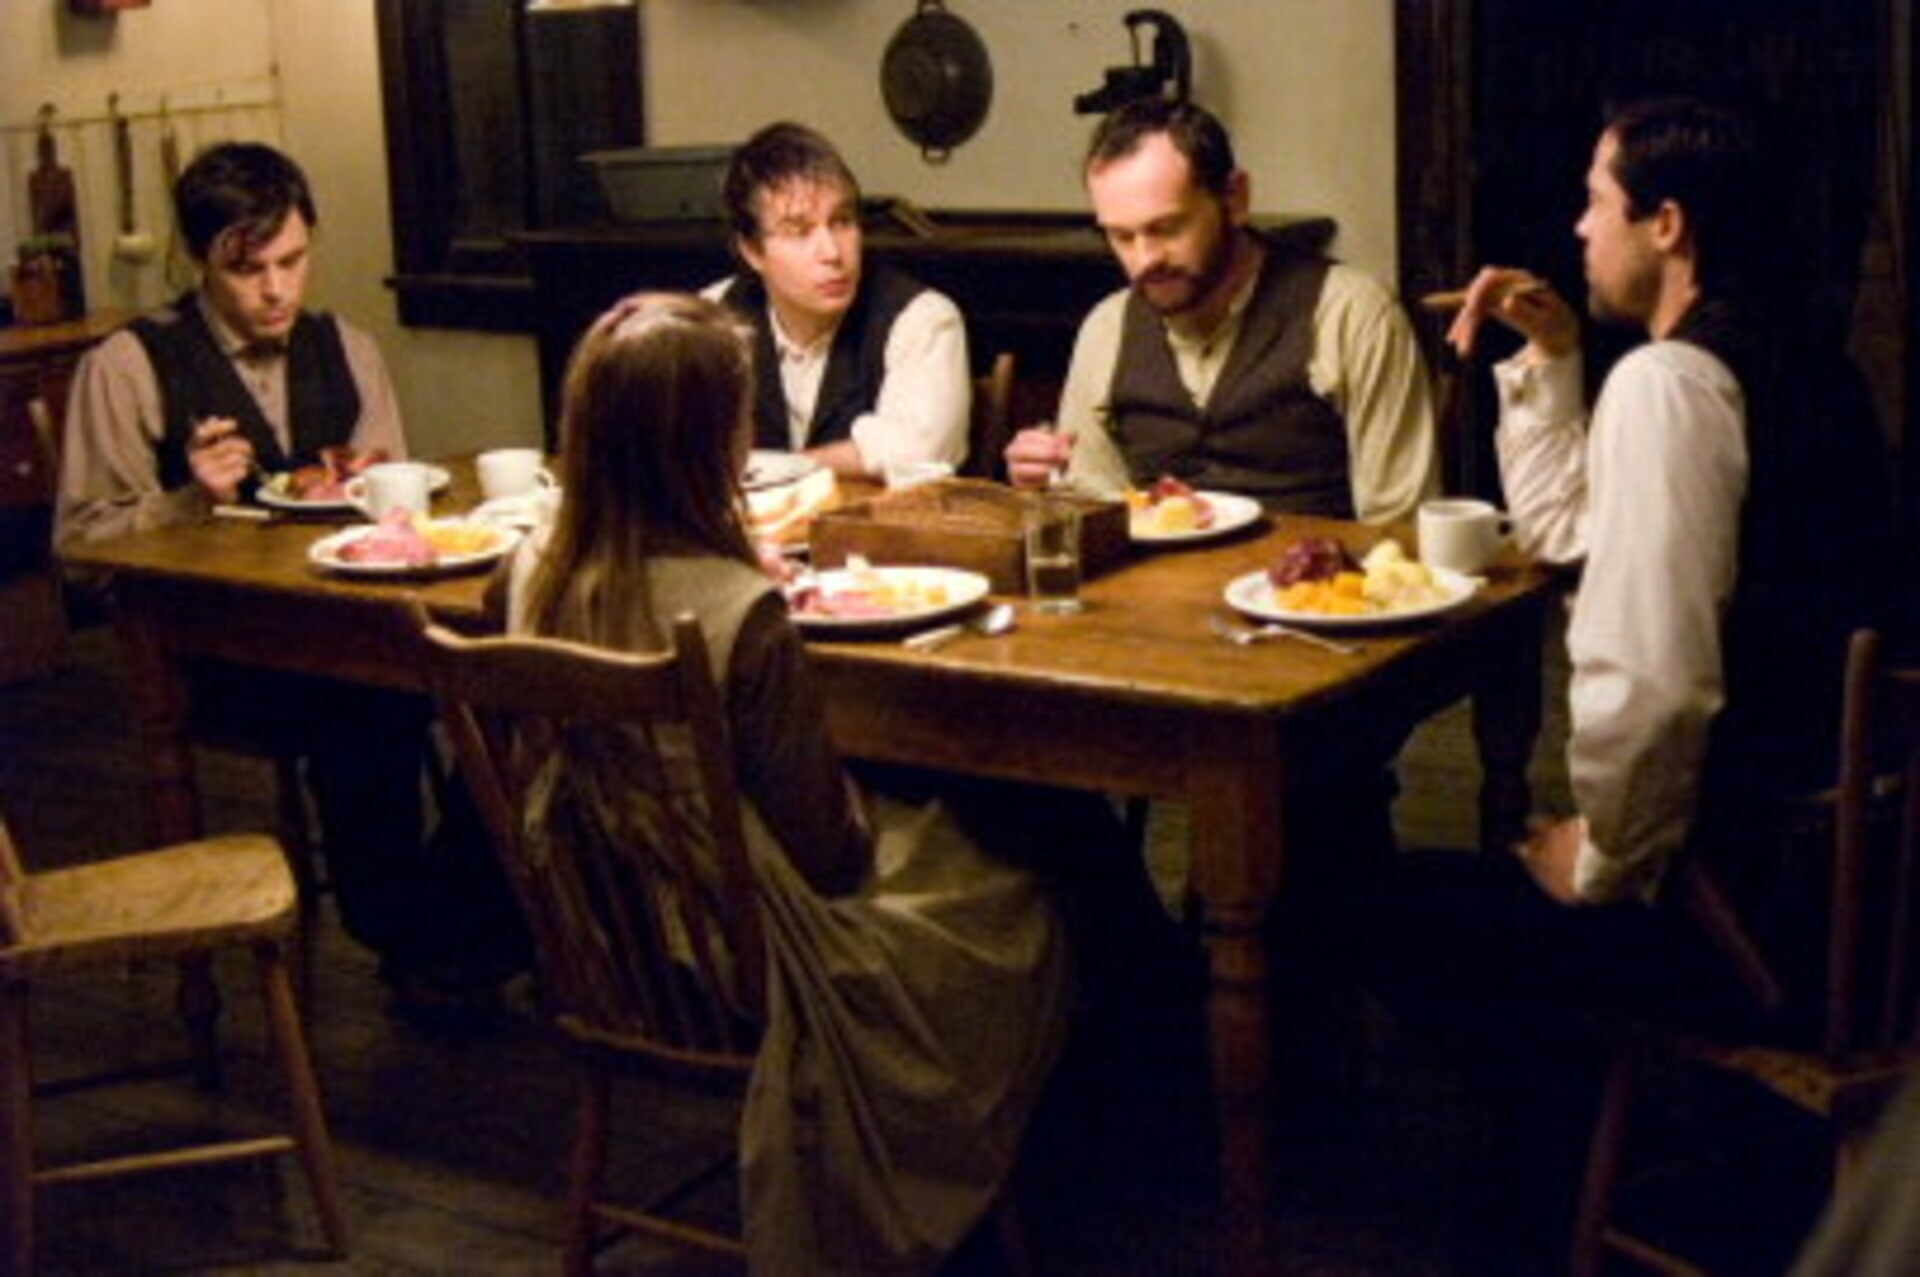 The Assassination of Jesse James by the Coward Robert Ford - Image 18